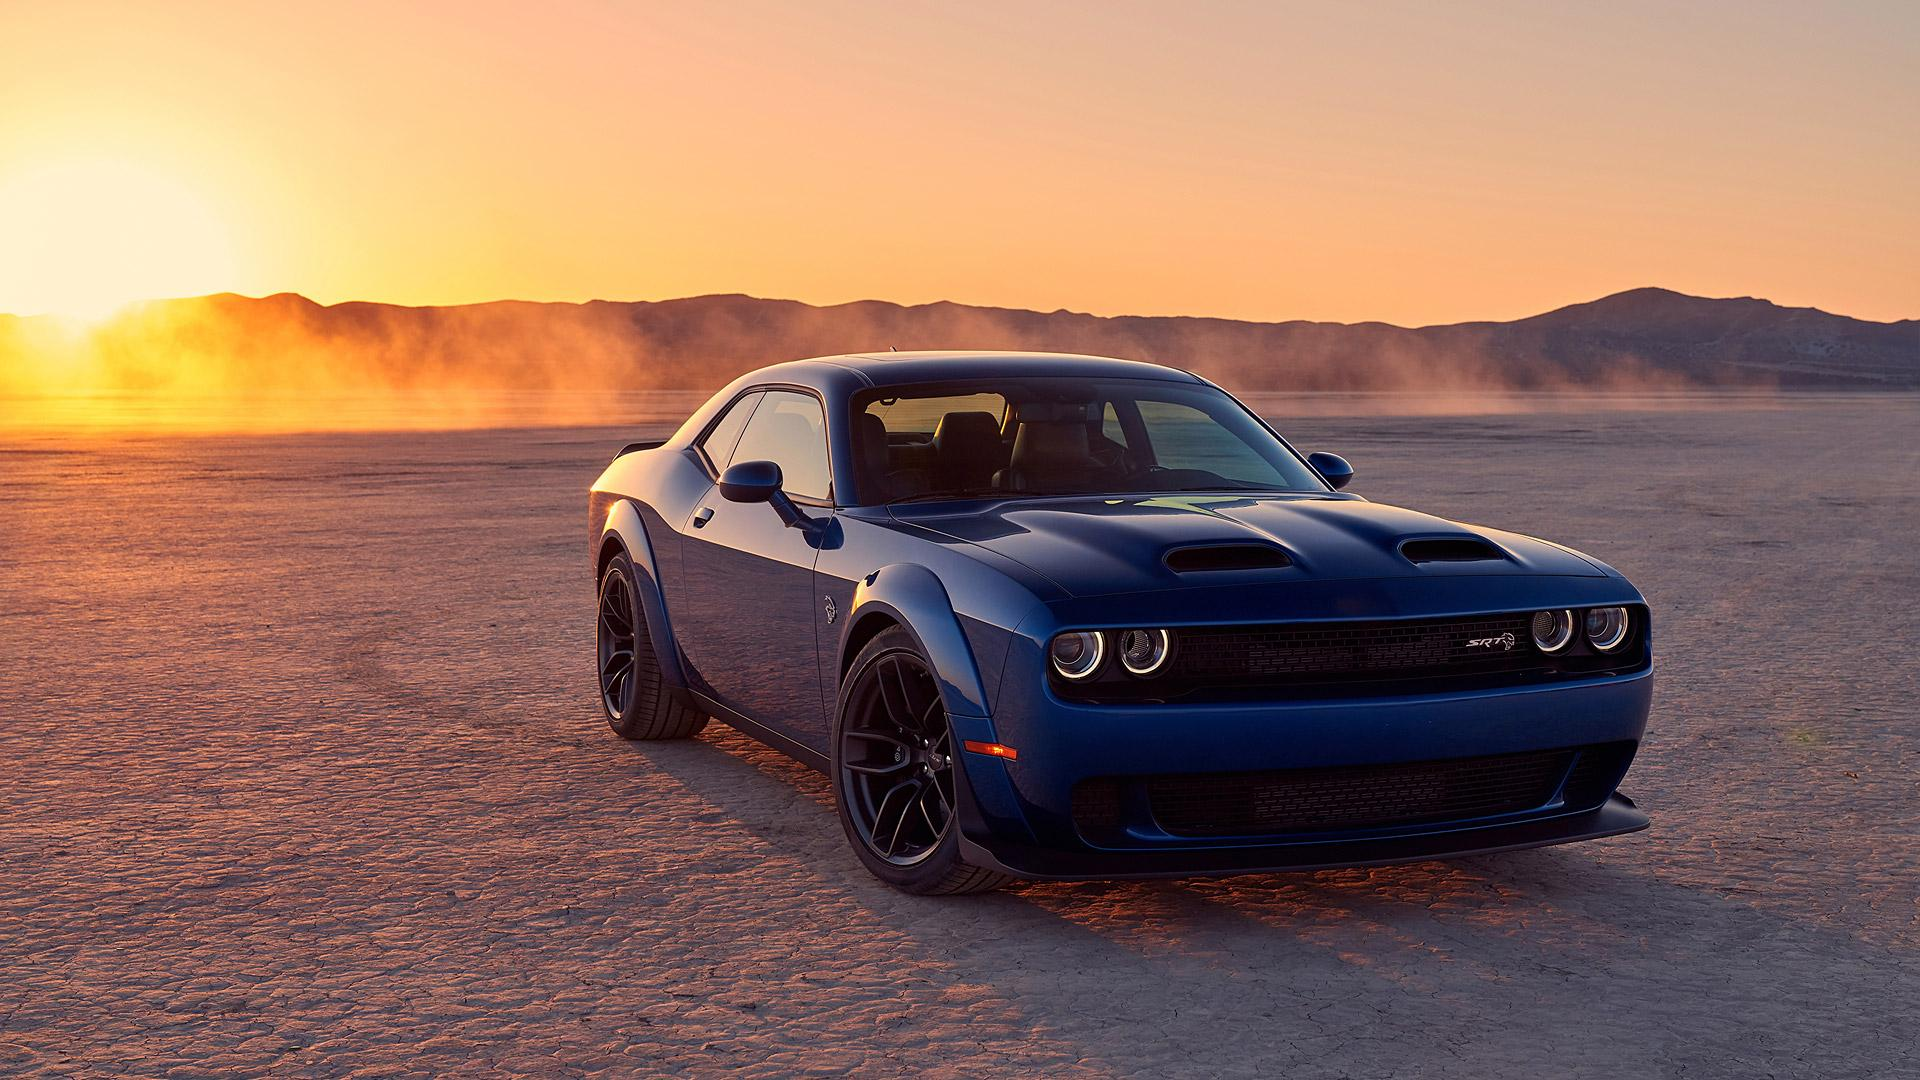 2019 Dodge Challenger SRT Hellcat Wallpapers - Wallpaper Cave